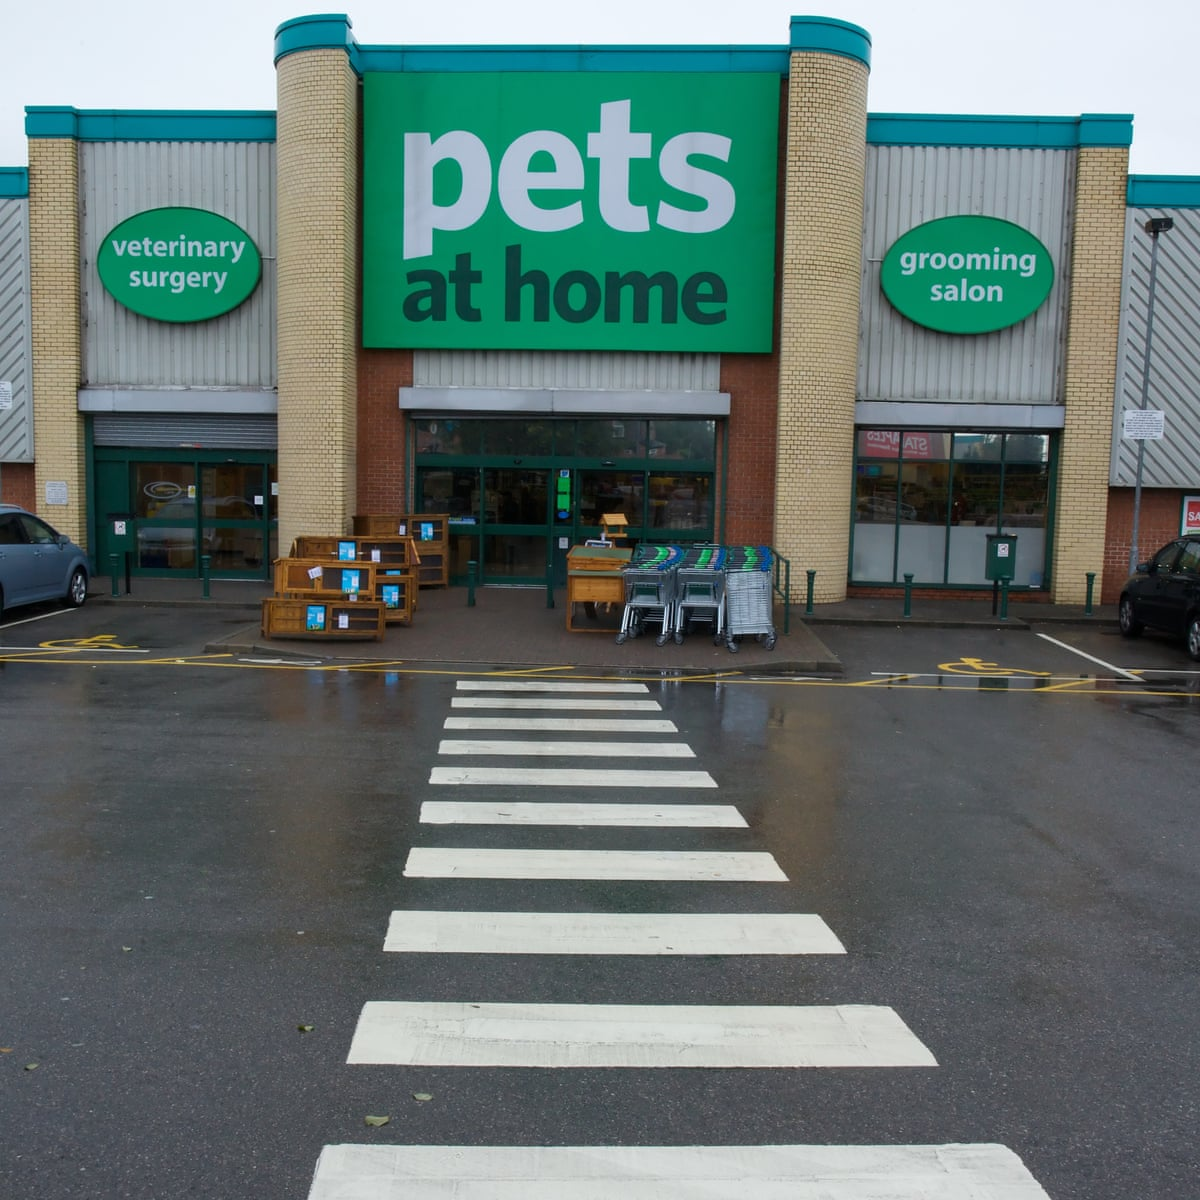 Pets At Home Under Fire For Coronavirus Key Worker Claim For Staff Business The Guardian